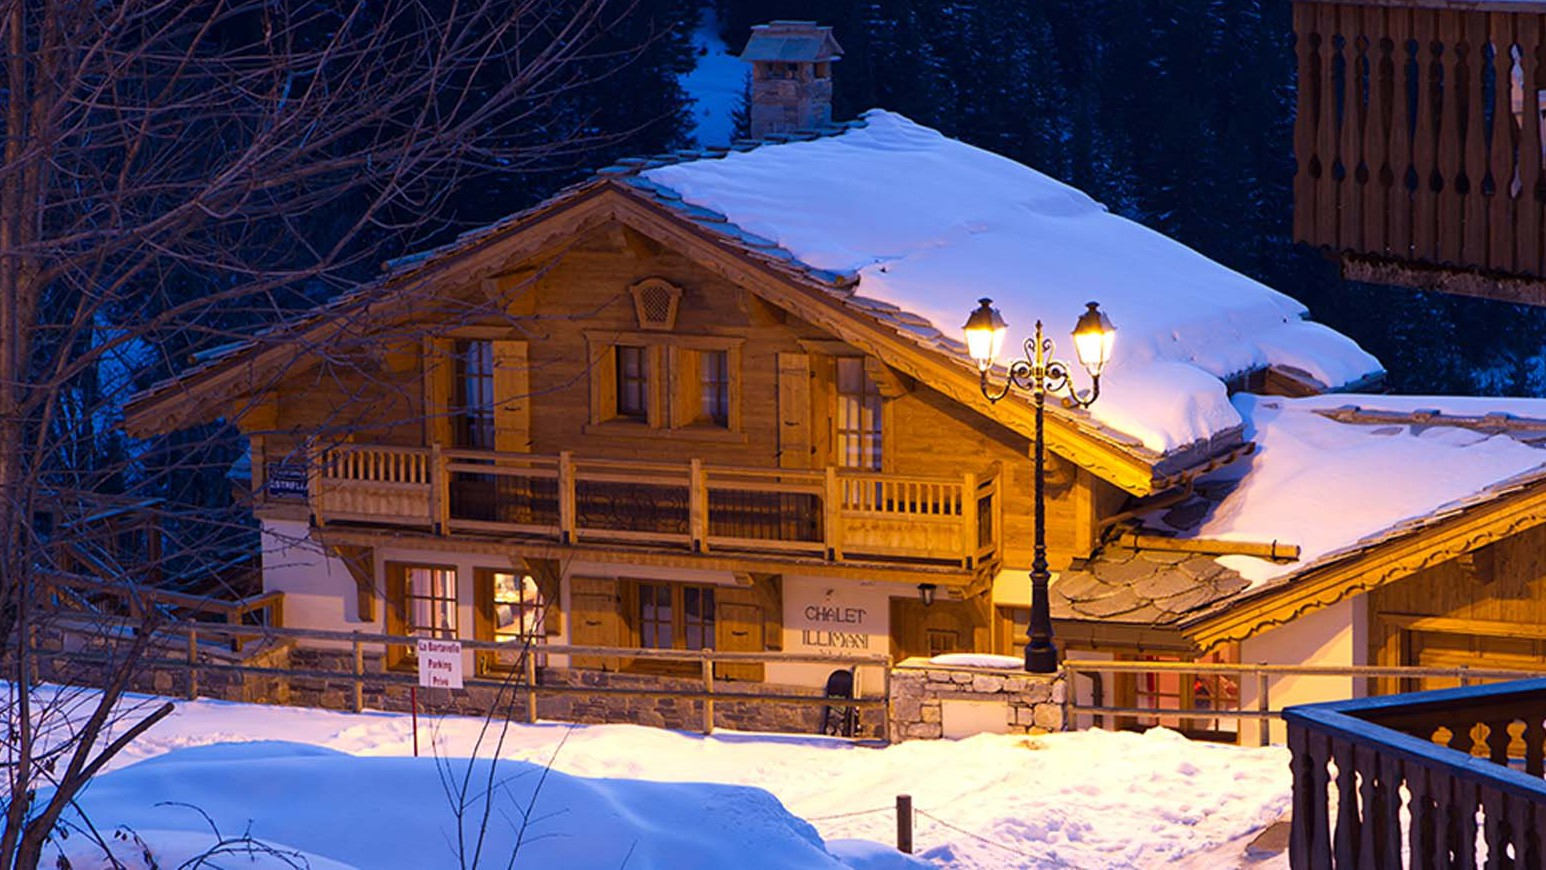 Chalet Estrella exterior at night, Courchevel